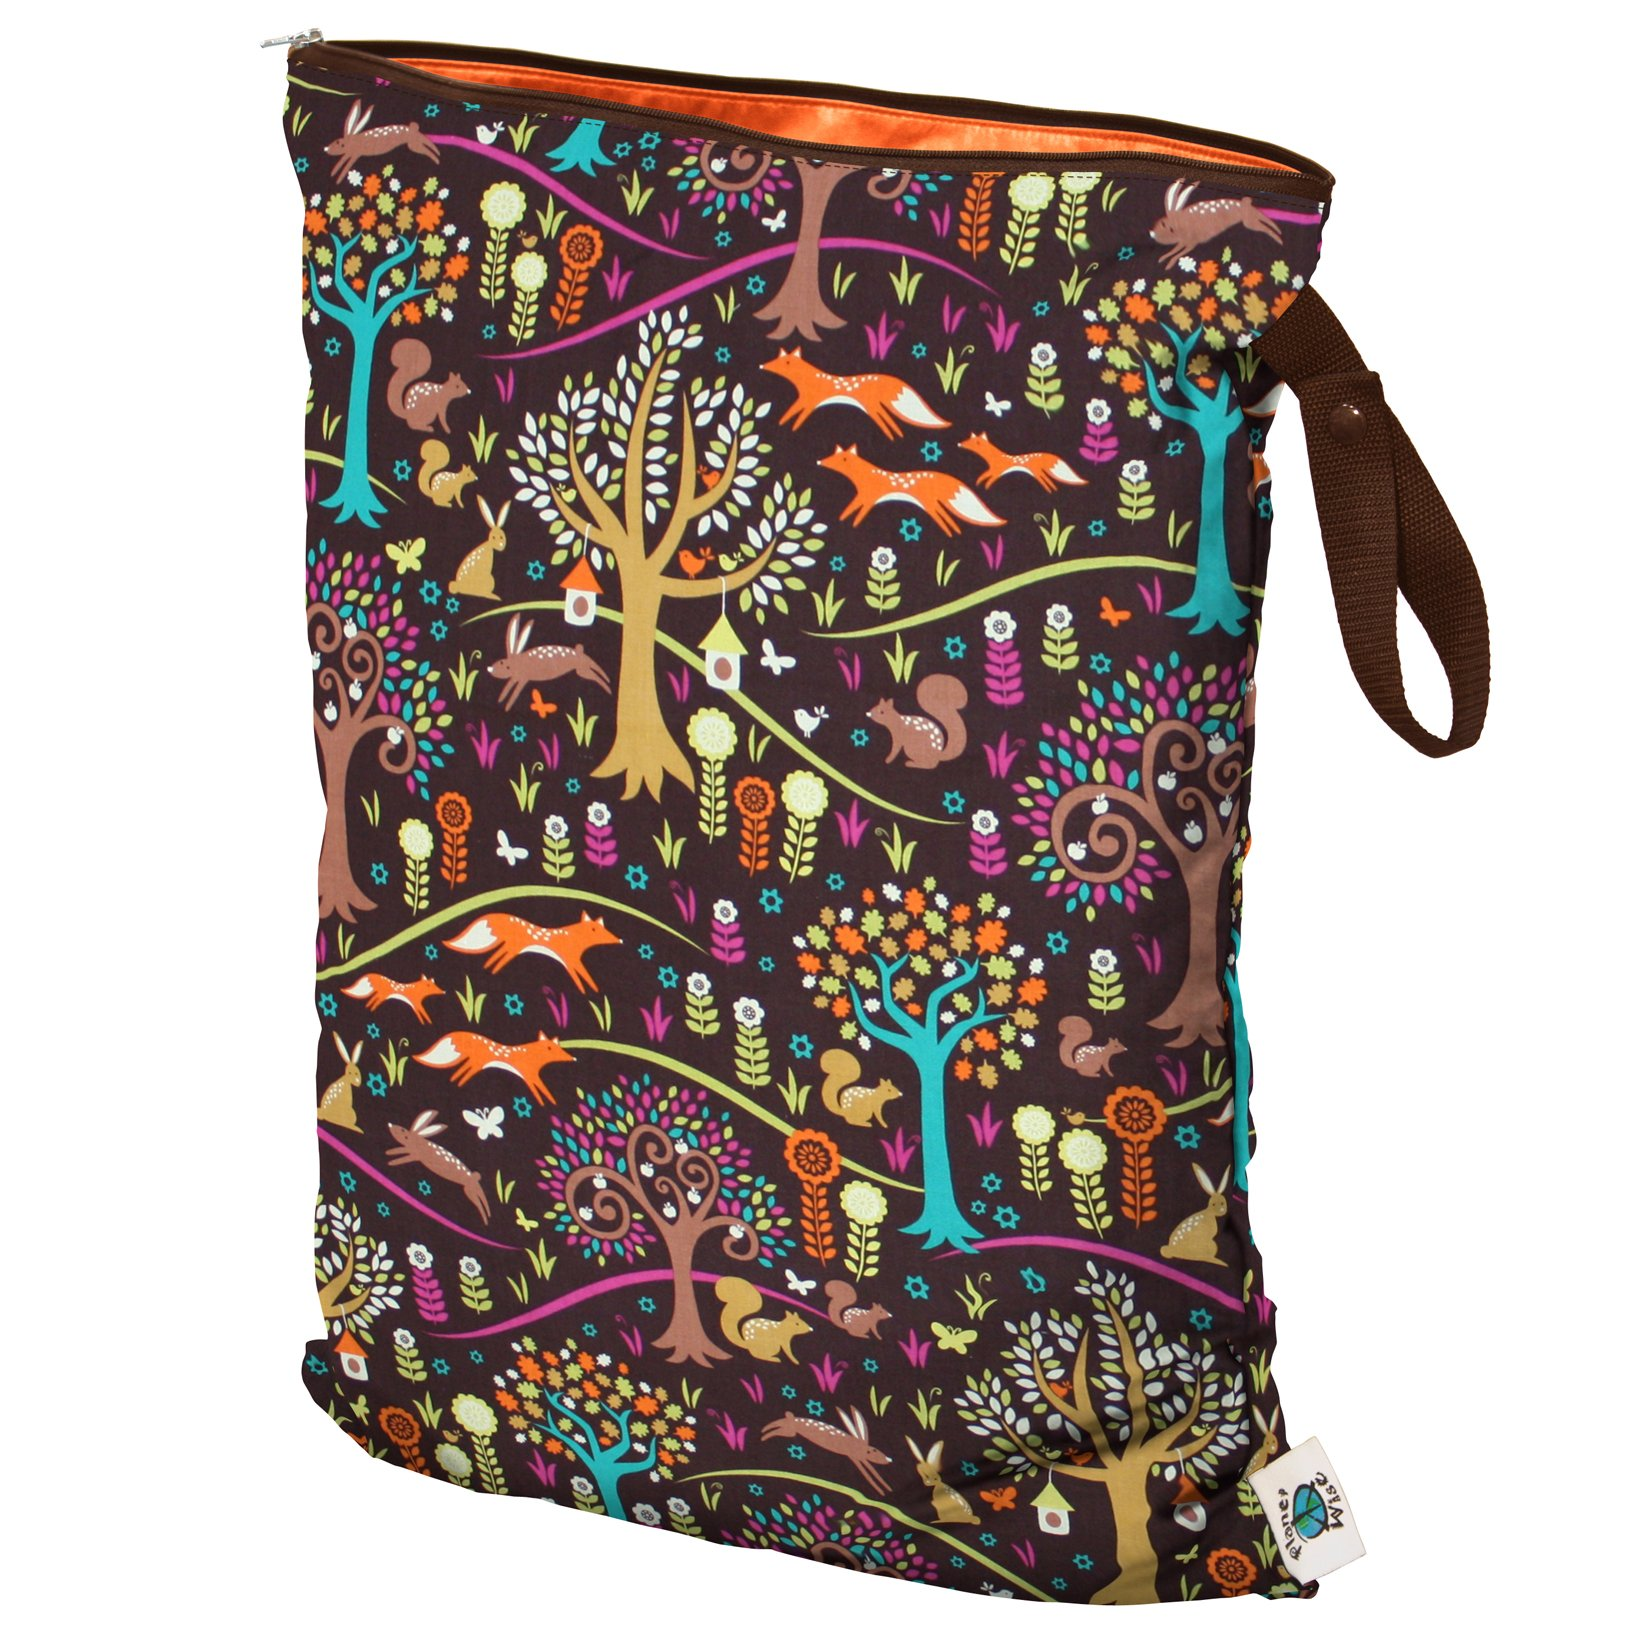 Planet Wise Wet Bag, Large, Jewel Woods (Made in the USA) by Planet Wise